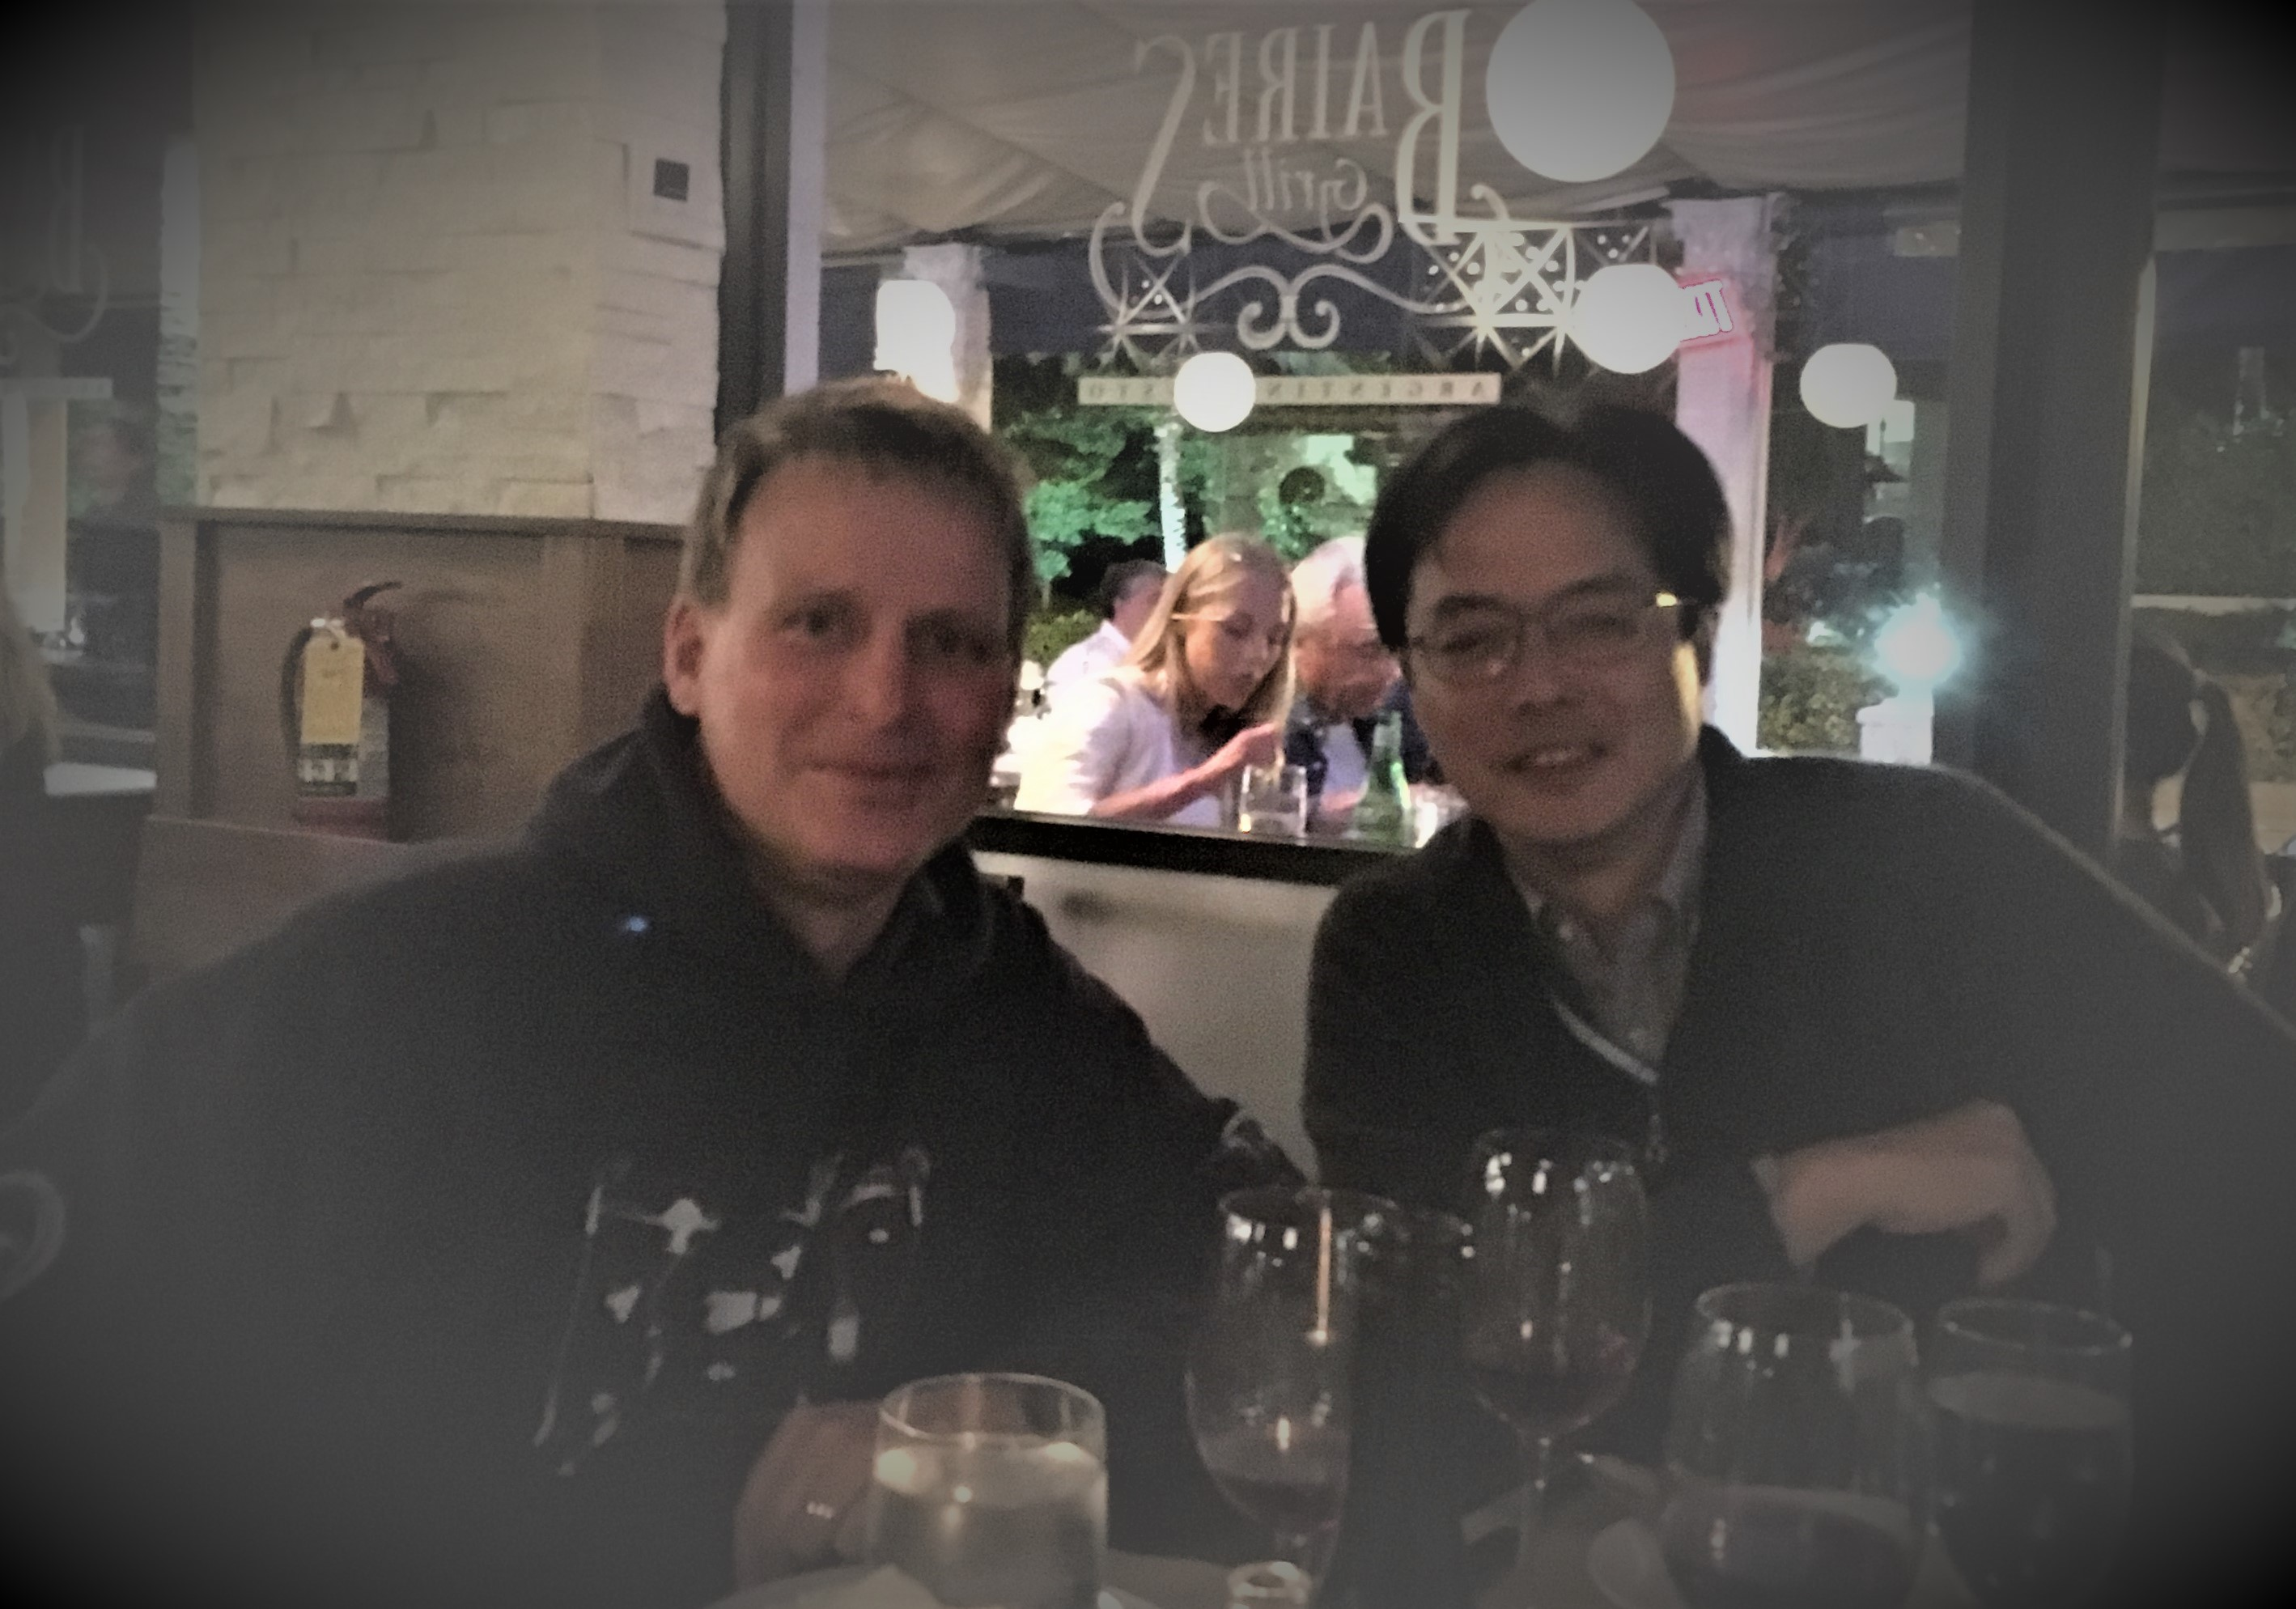 Masao Ishii and Toste Tanhua (IOCCP Co-Chairs) during annual IOCCP dinner, Baires Grill, Miami, FL, USA.